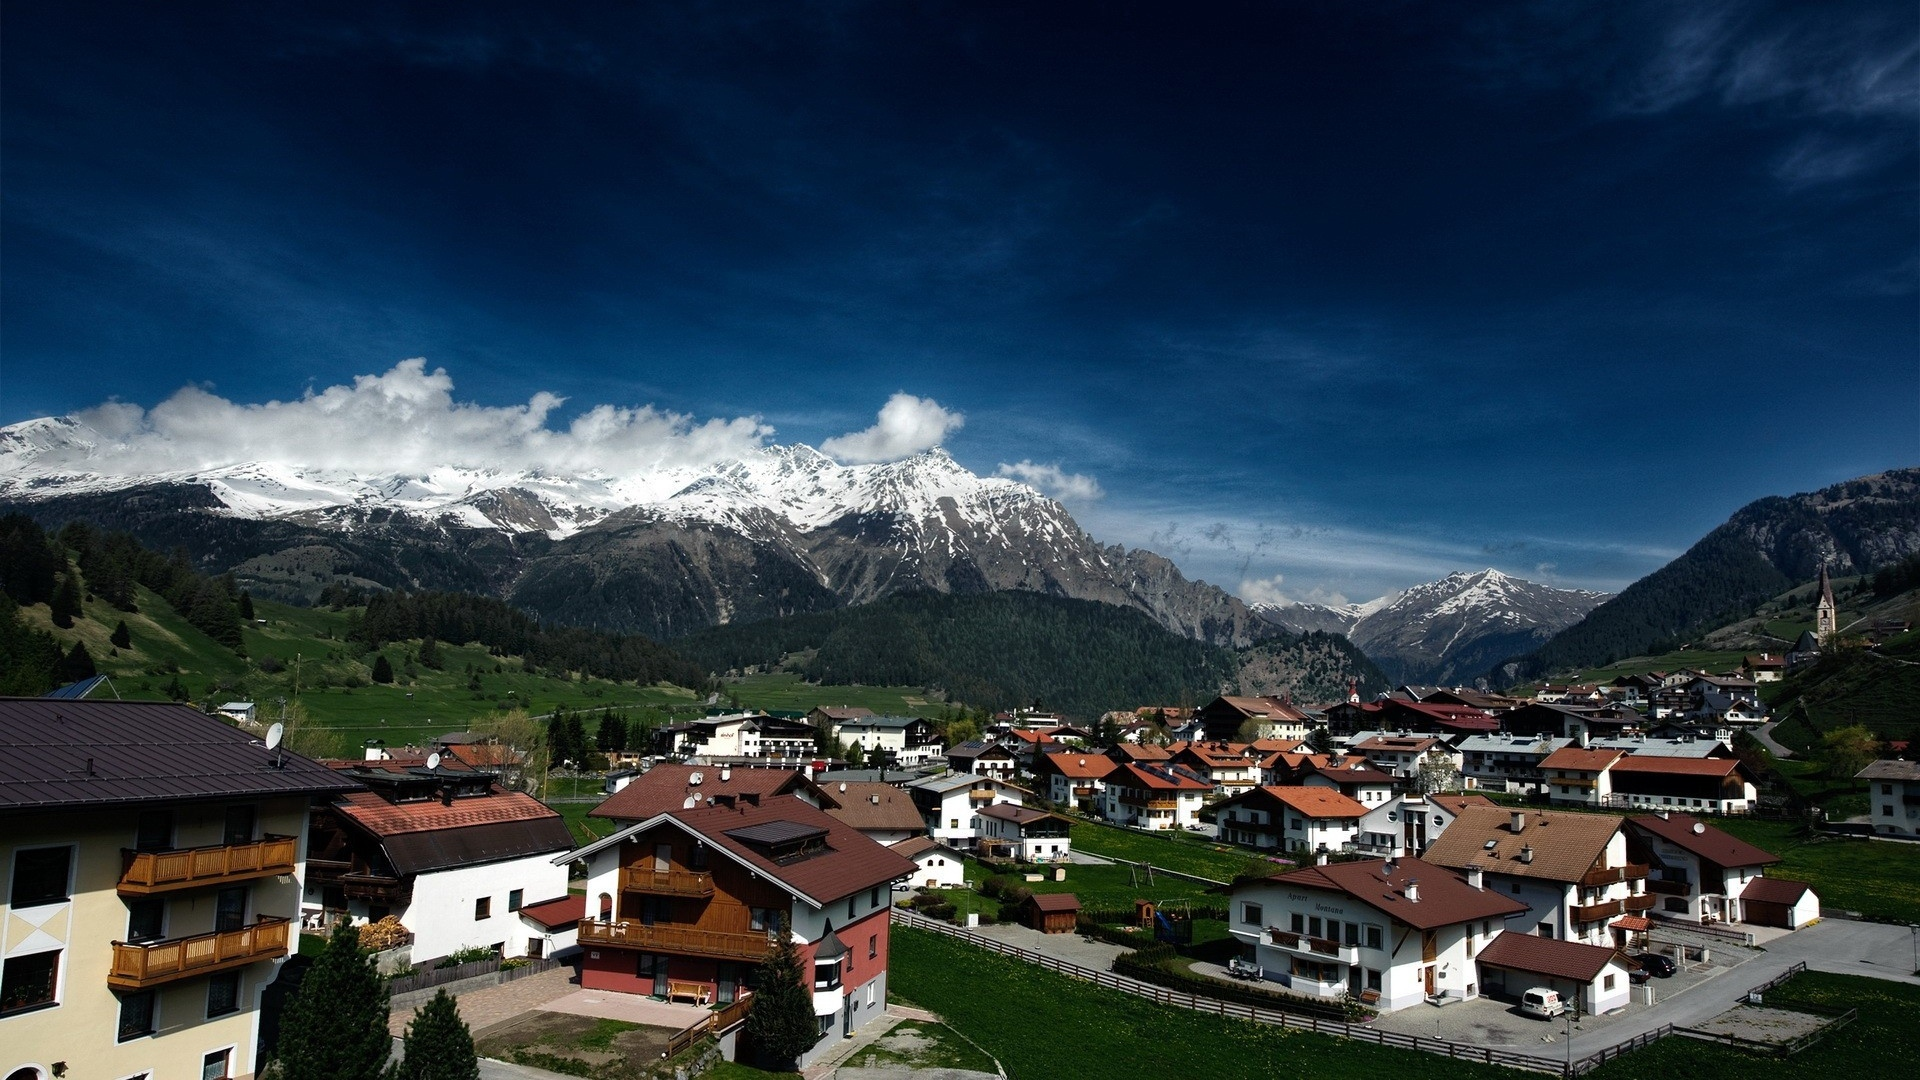 download wallpaper 1920x1080 switzerland, houses, mountains